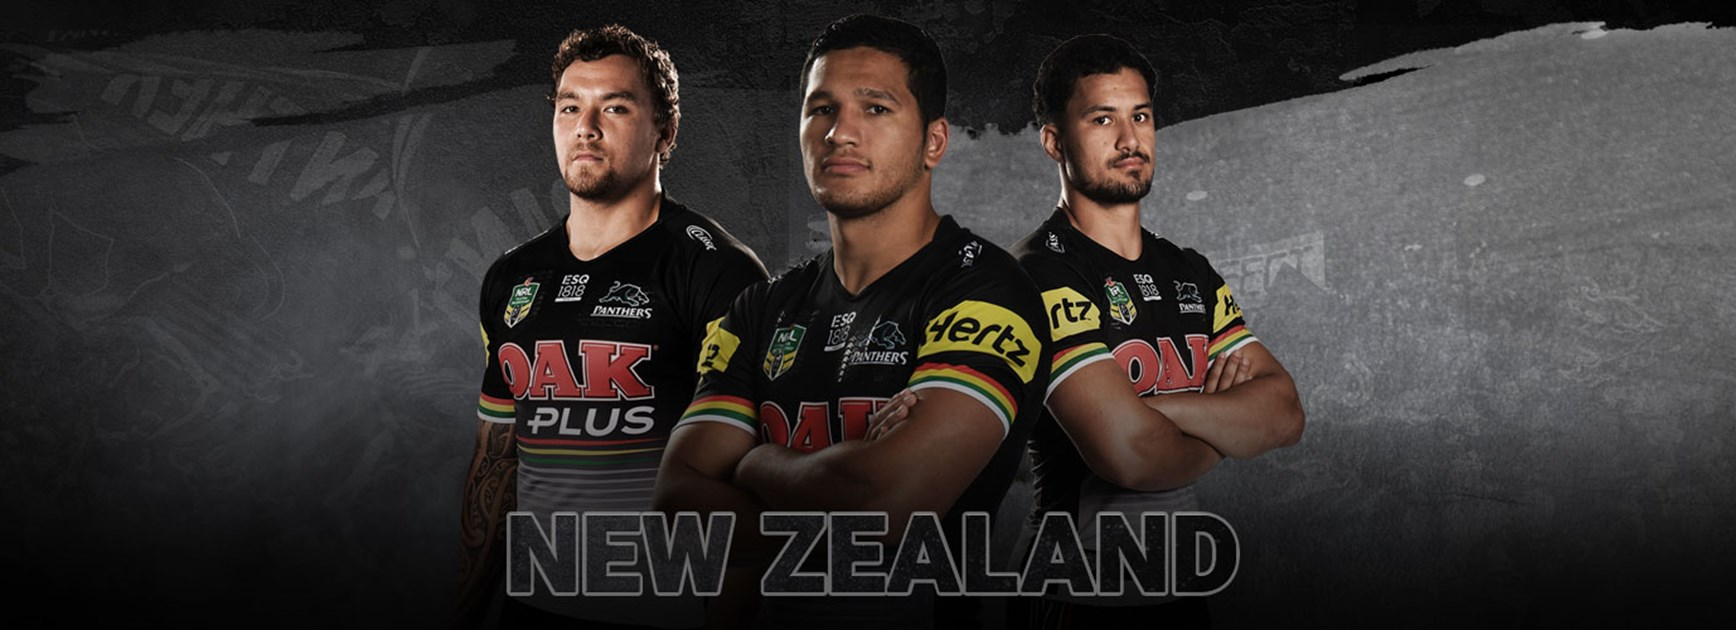 Panthers trio named for New Zealand